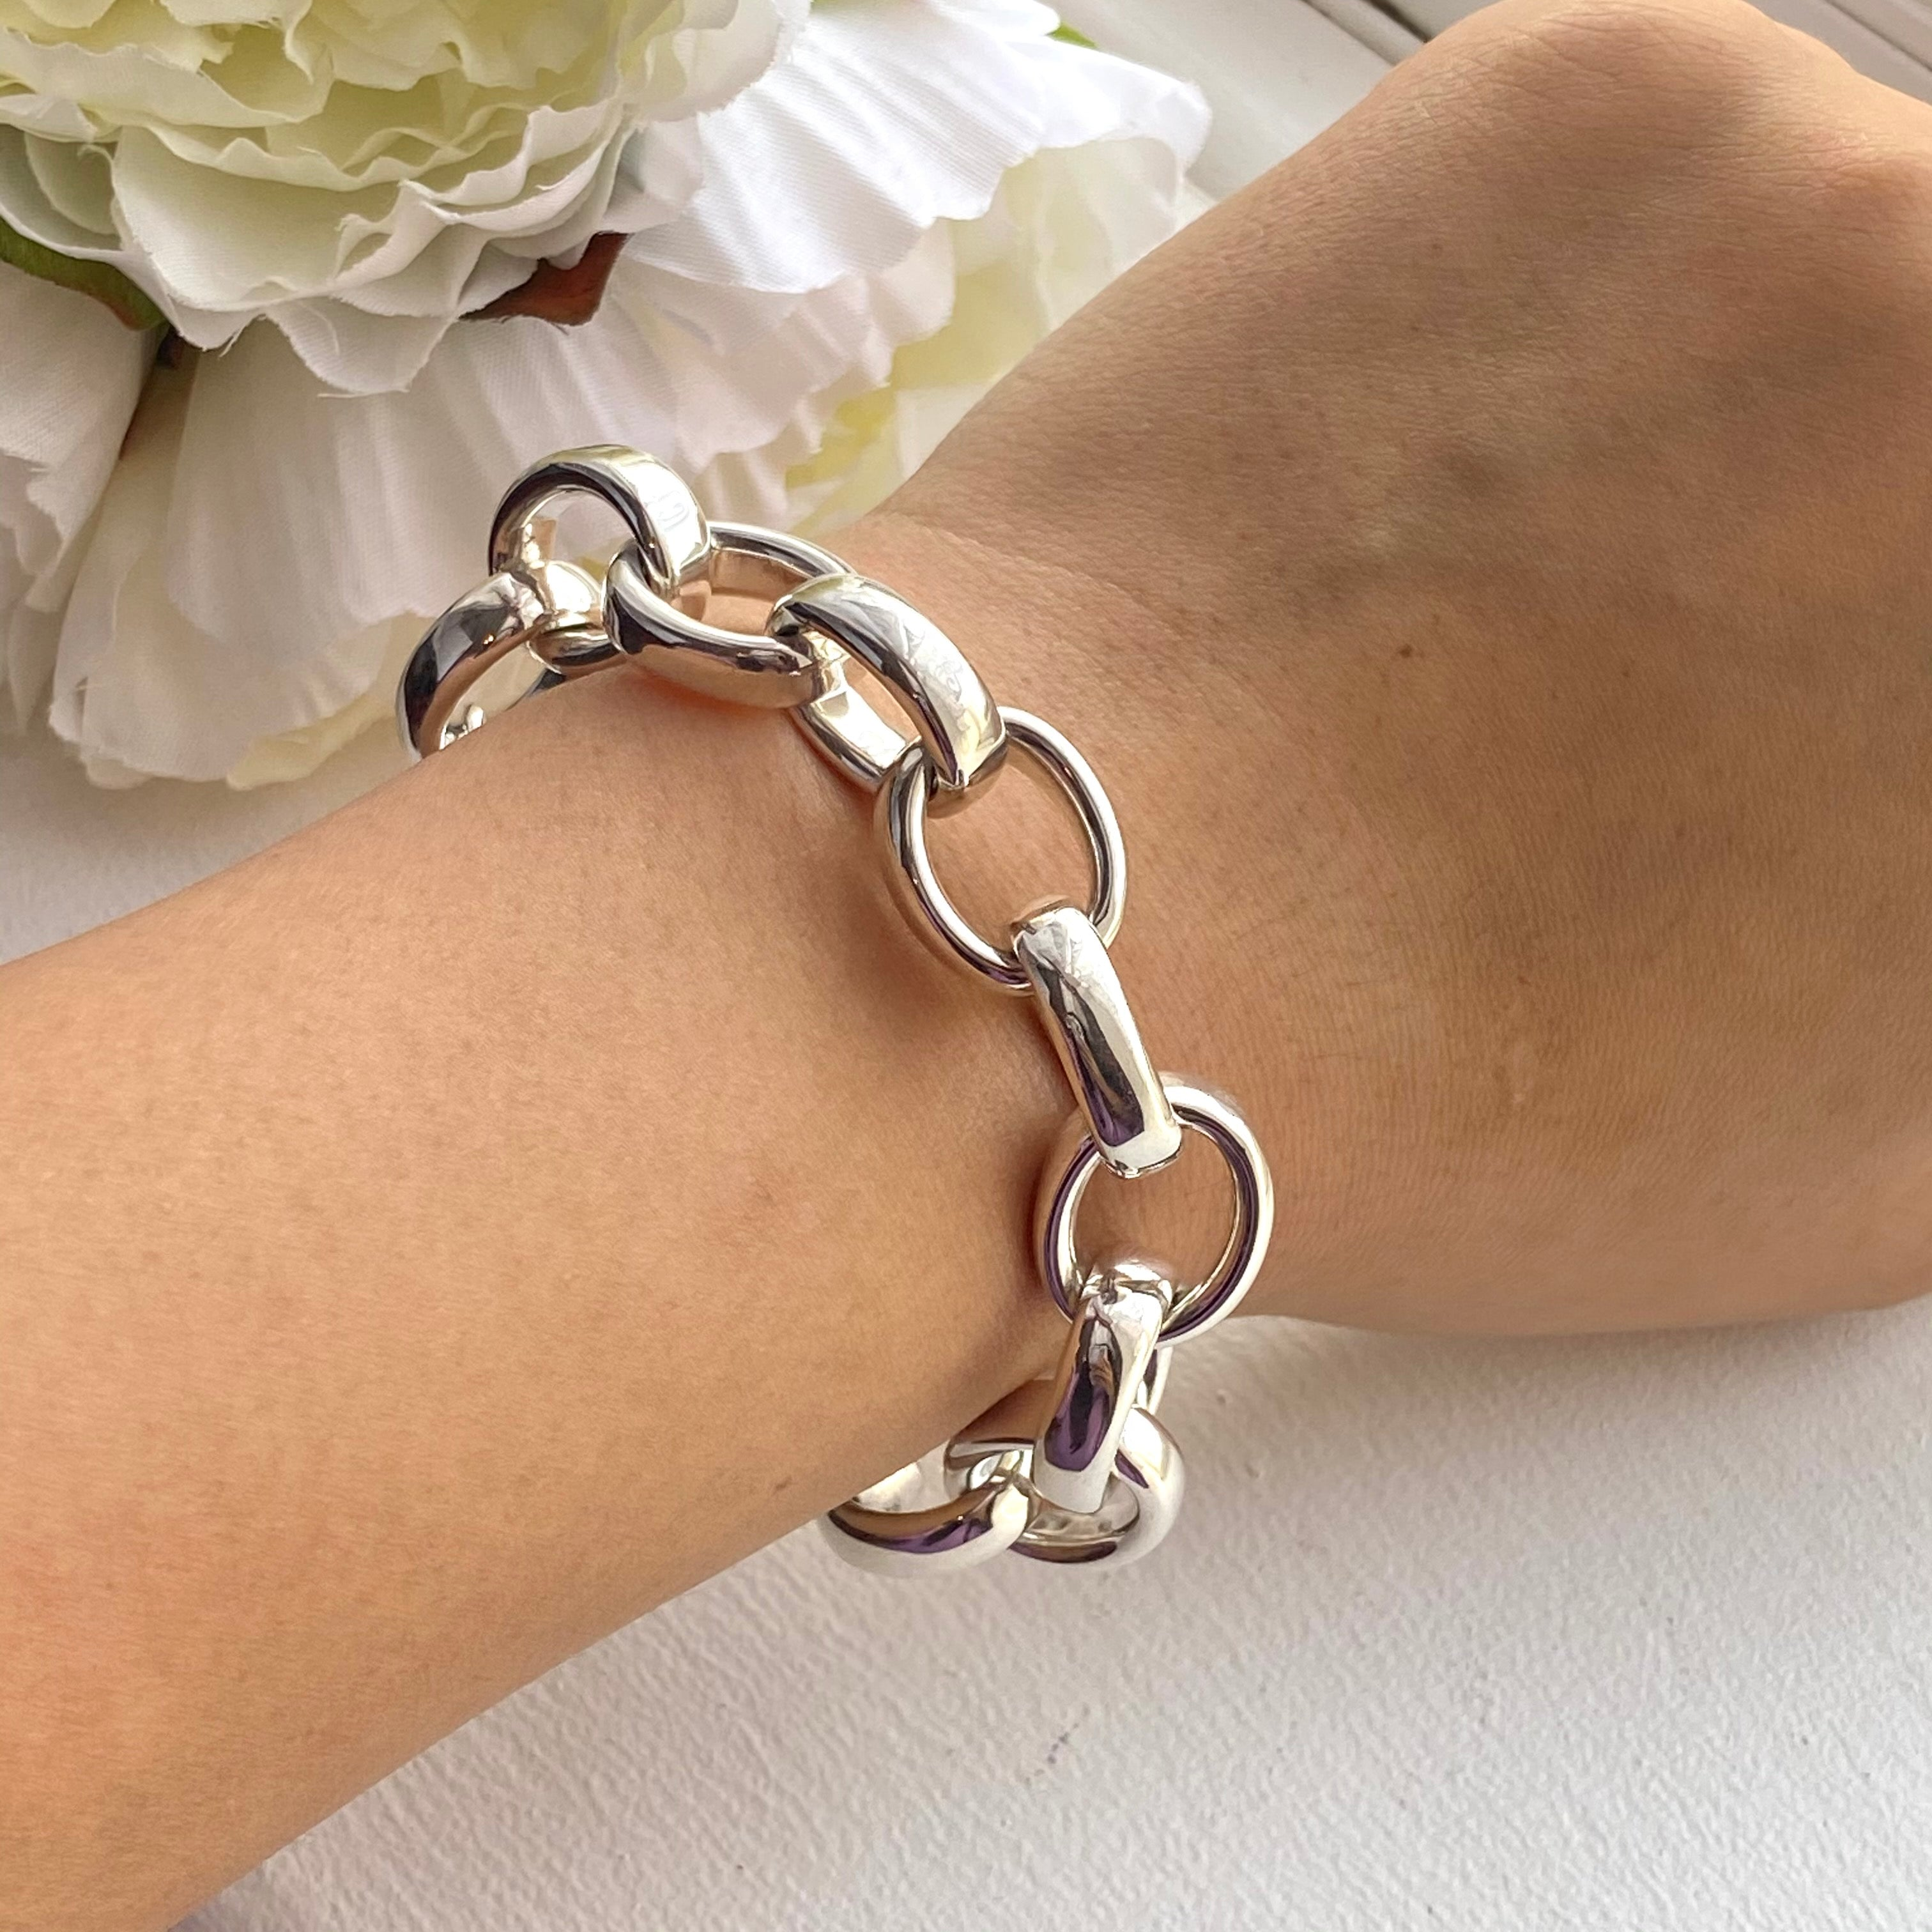 Sterling Silver Bracelet with Hollow Chunky Oval Links